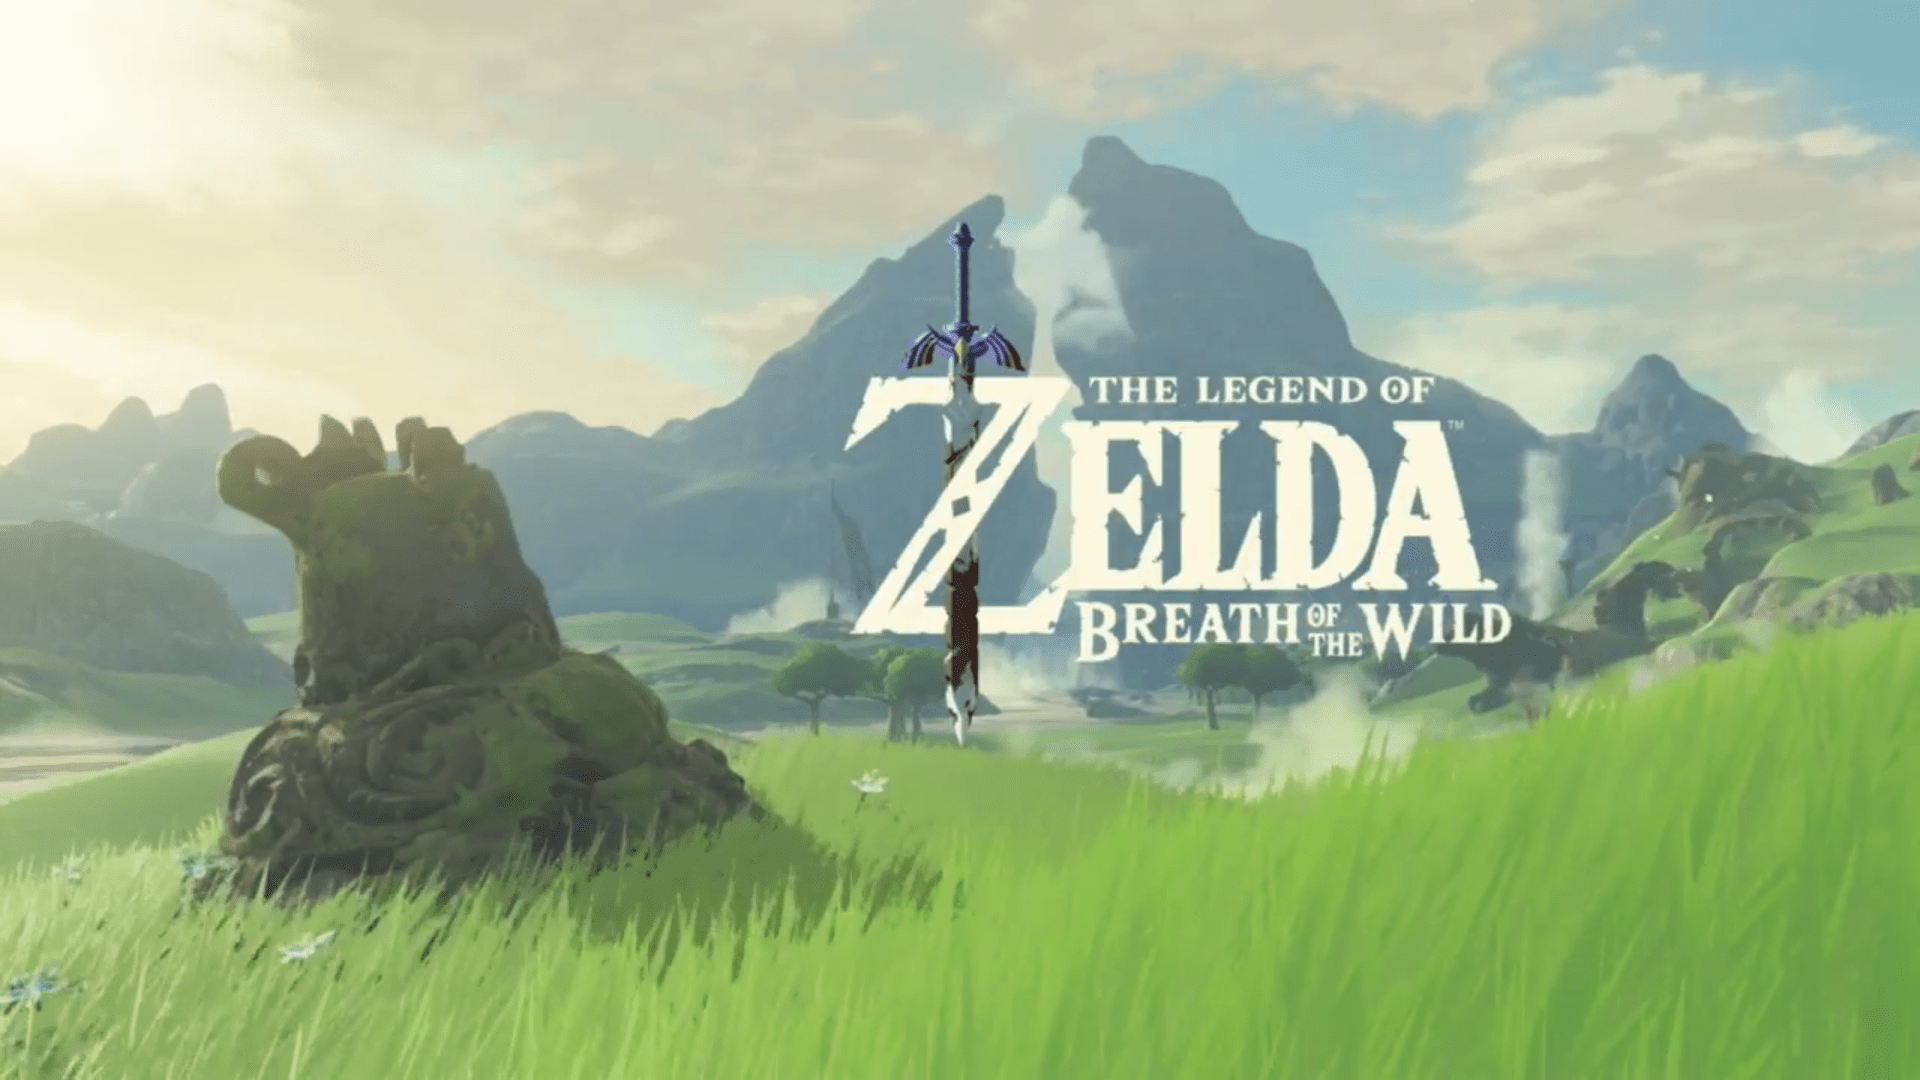 Nintendo Reveals The Legend Of Zelda Breath Of The Wild VG247